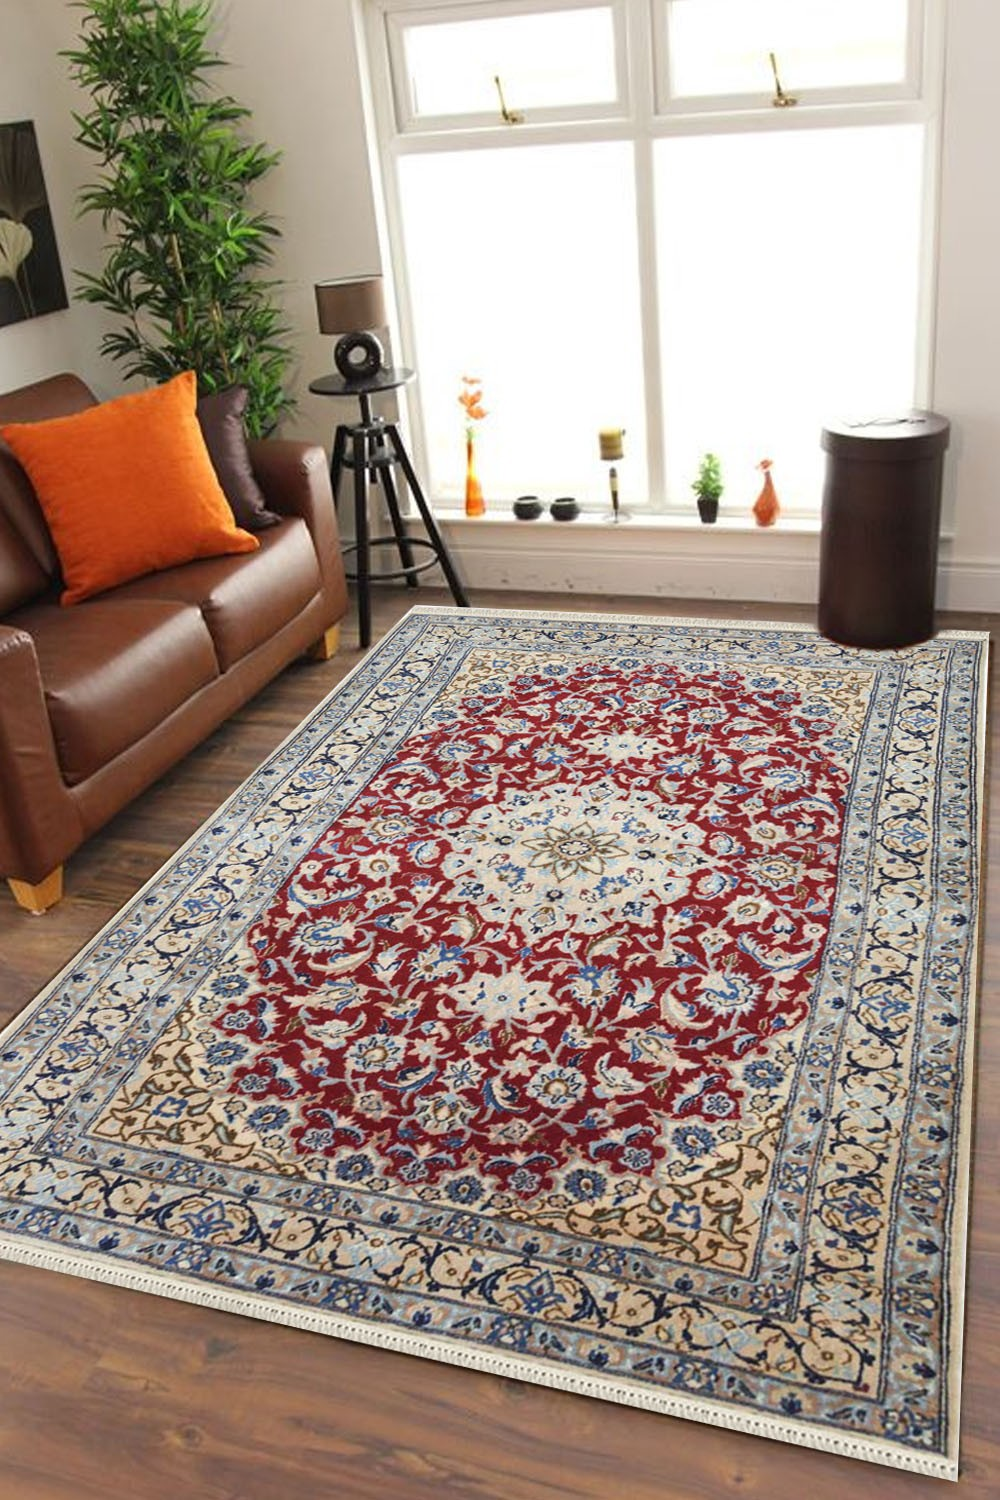 Carpet The Best Place For Persian Rugs